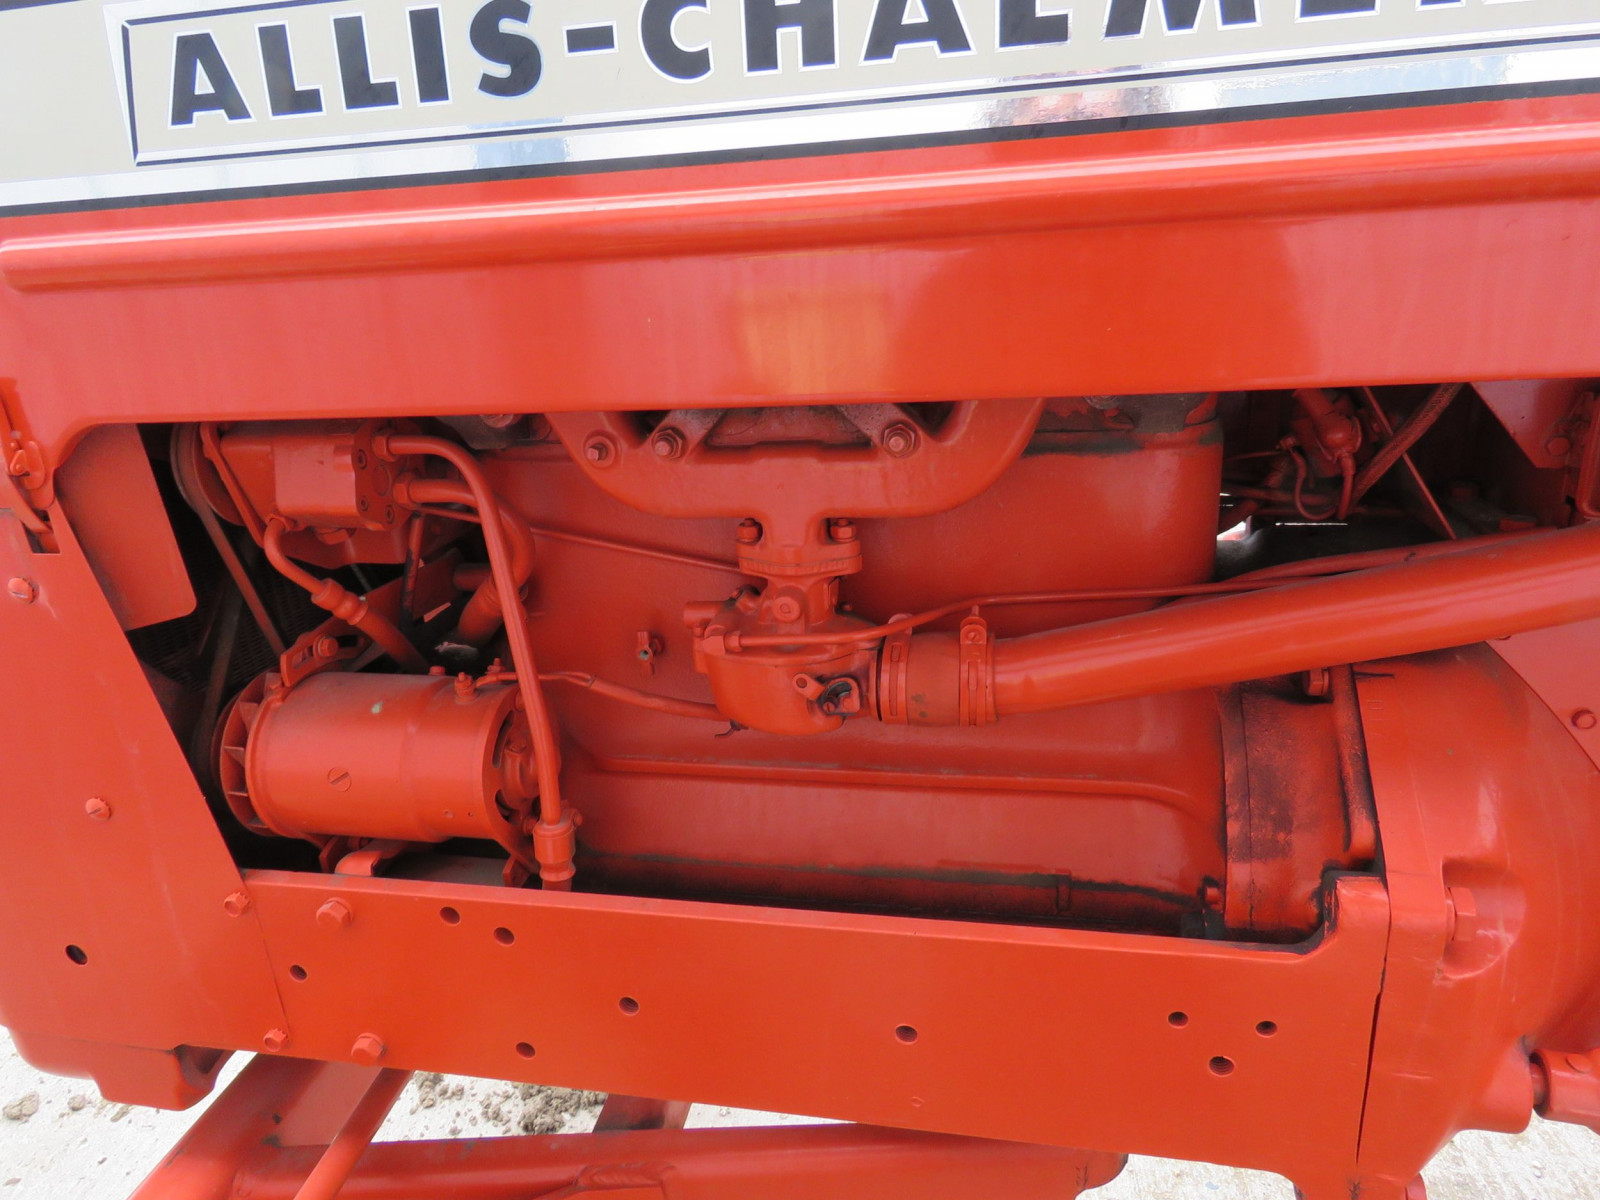 Allis Chalmers D17 Tractor - Image 8